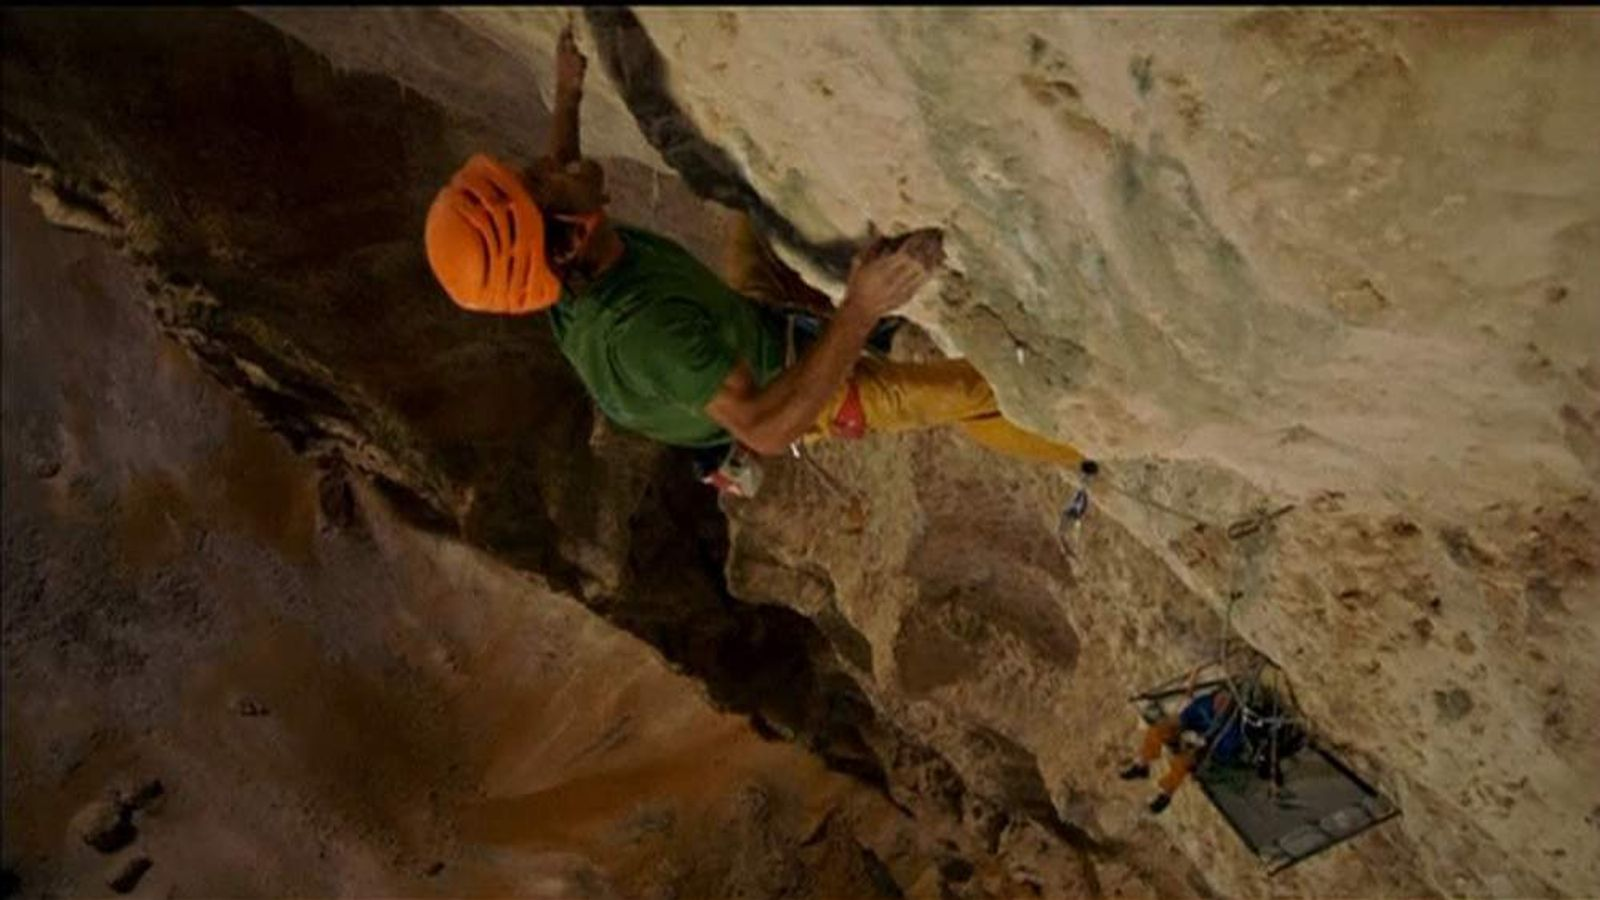 Two climbers ascend one of the world's biggest cave chambers